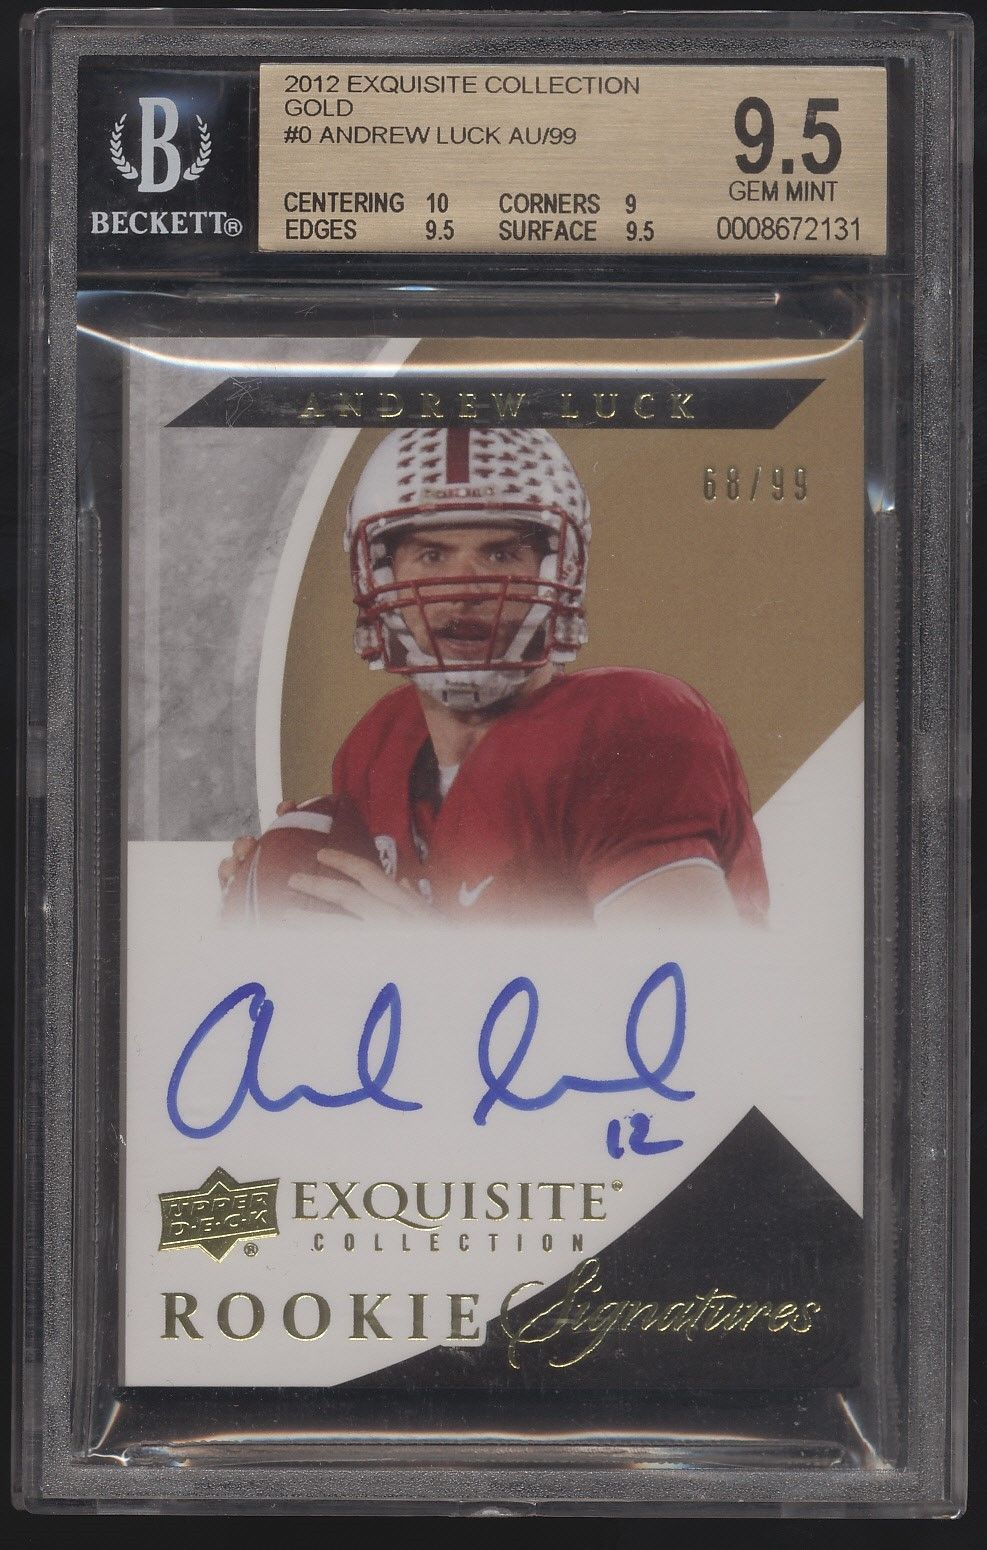 2012 UD Exquisite Andrew Luck Gold RC Auto Autograph 99 BGS 95 10